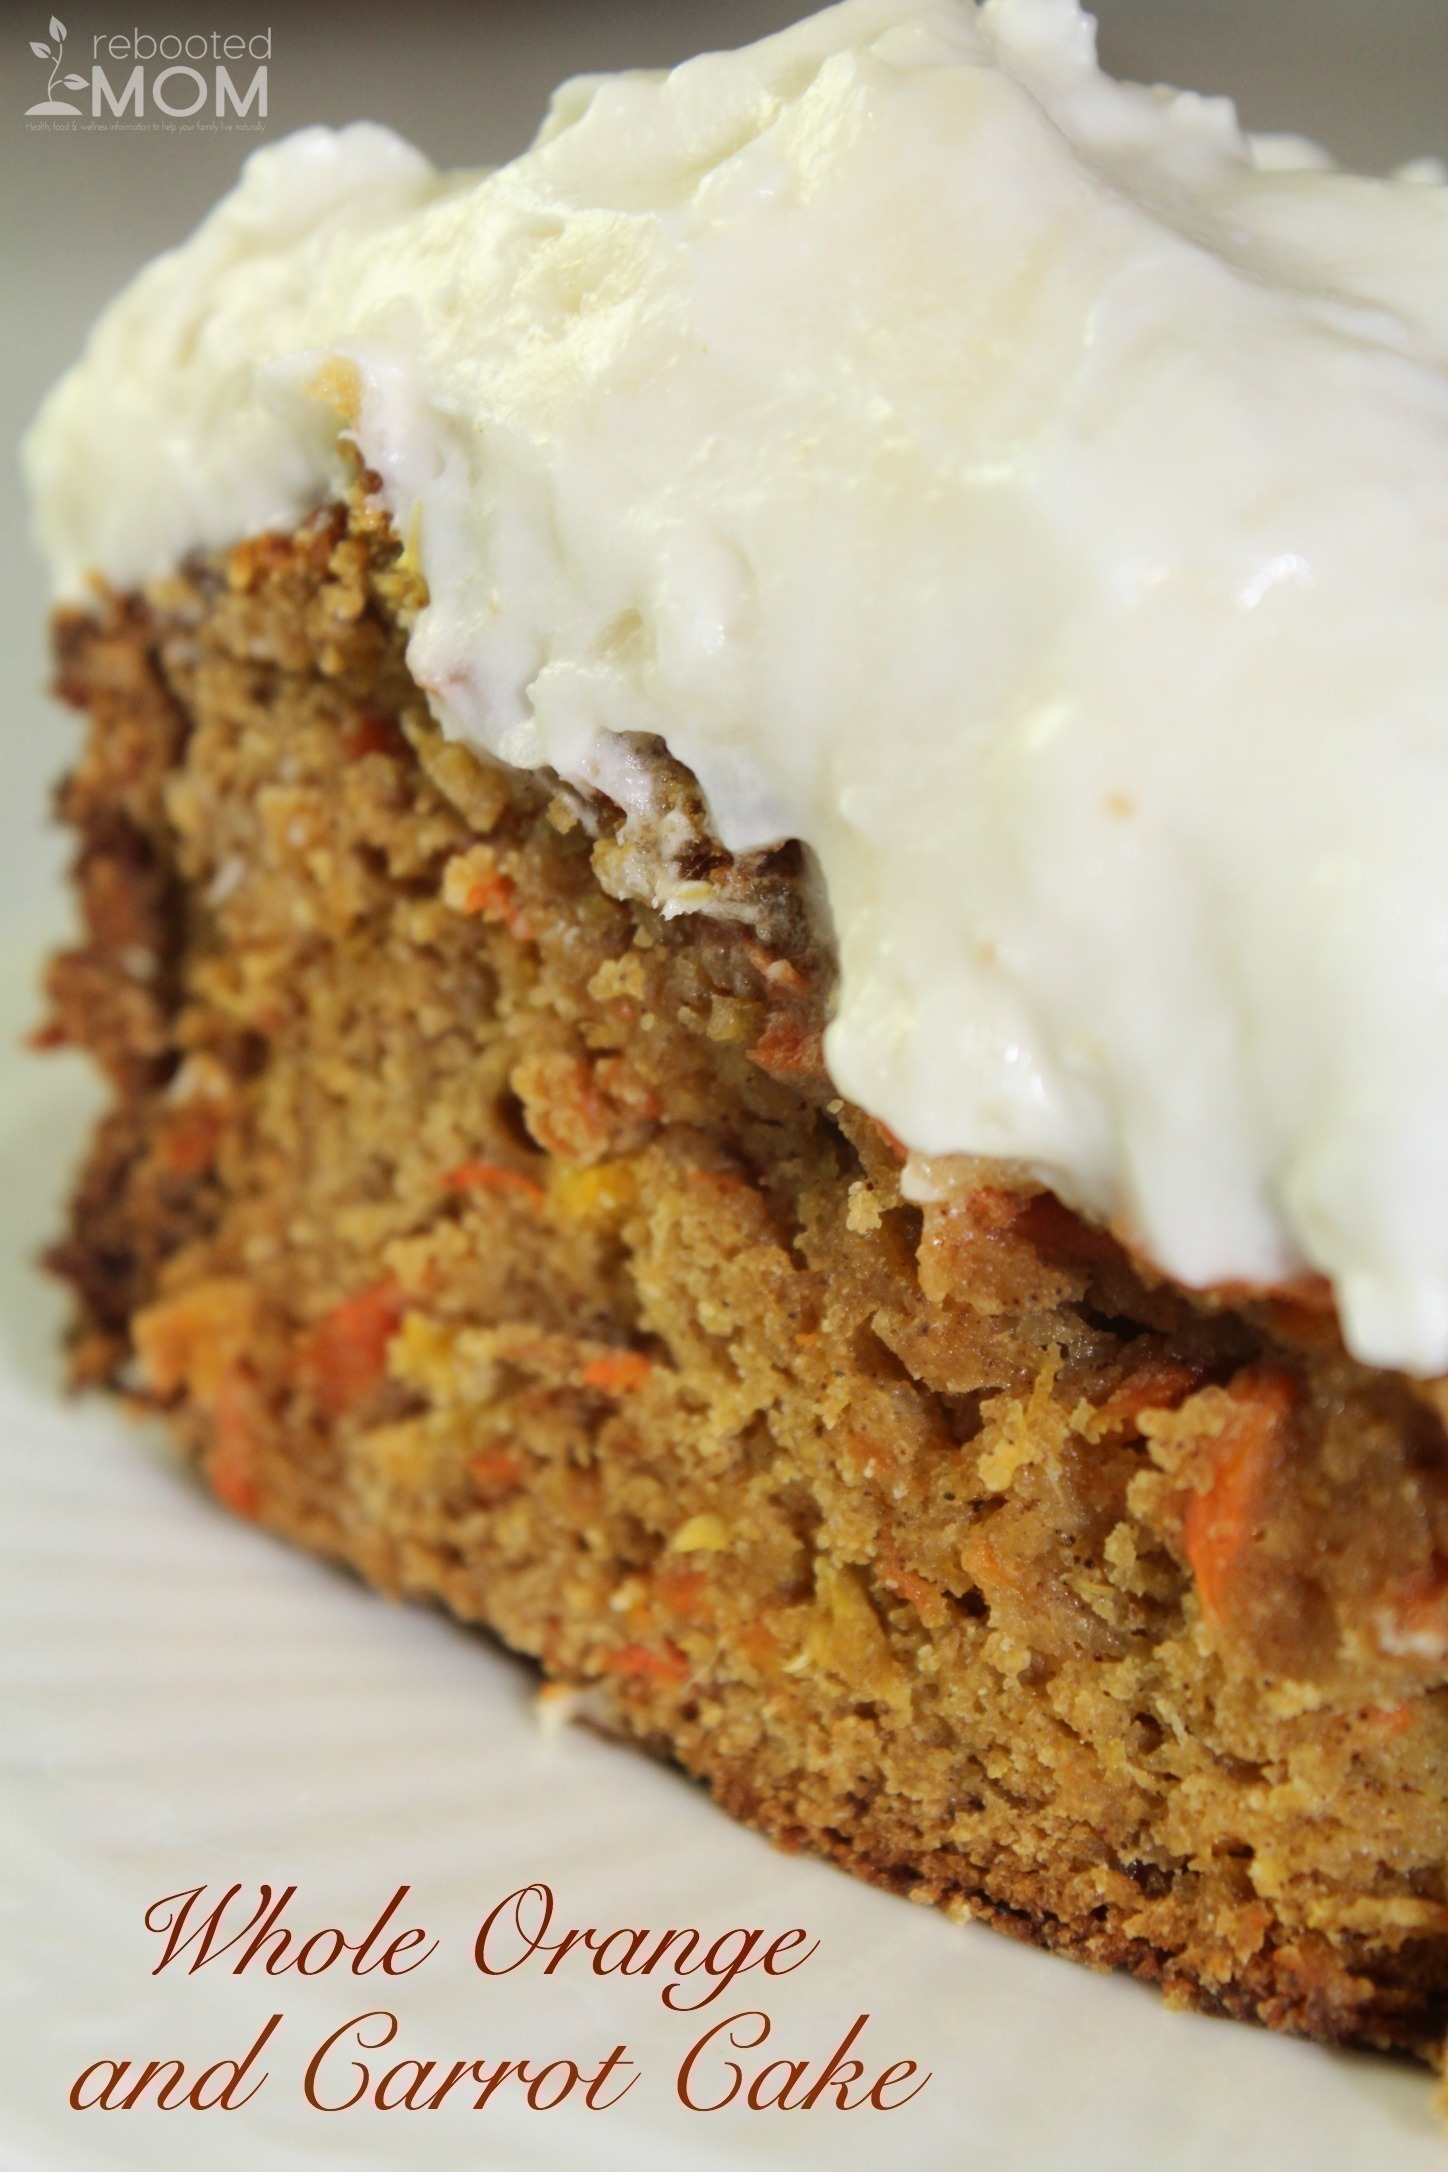 Whole Orange and Carrot Cake